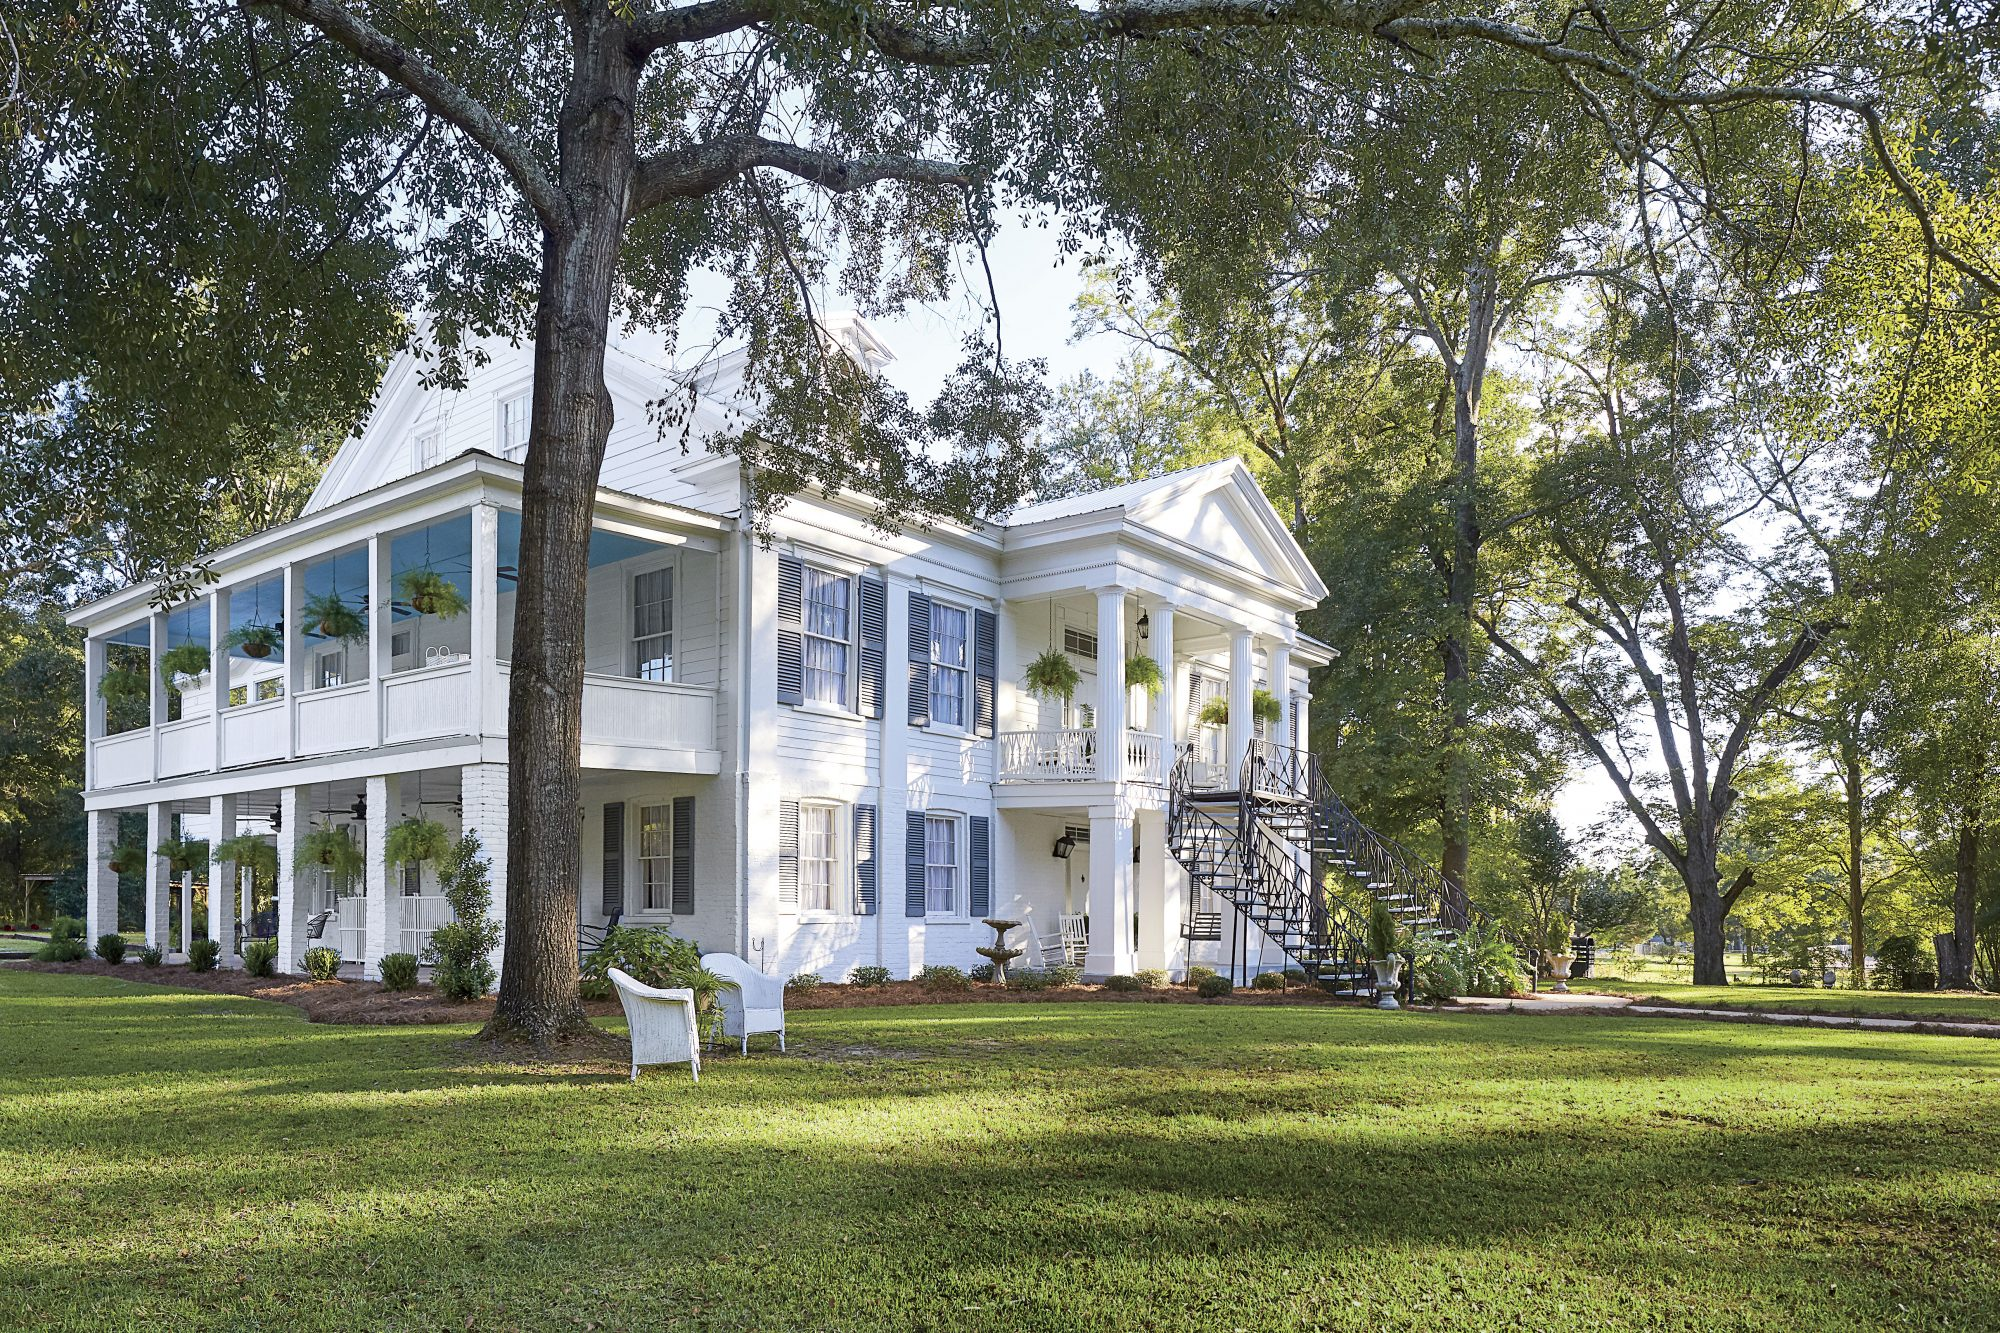 Sidney Collins Freeman Restored House After